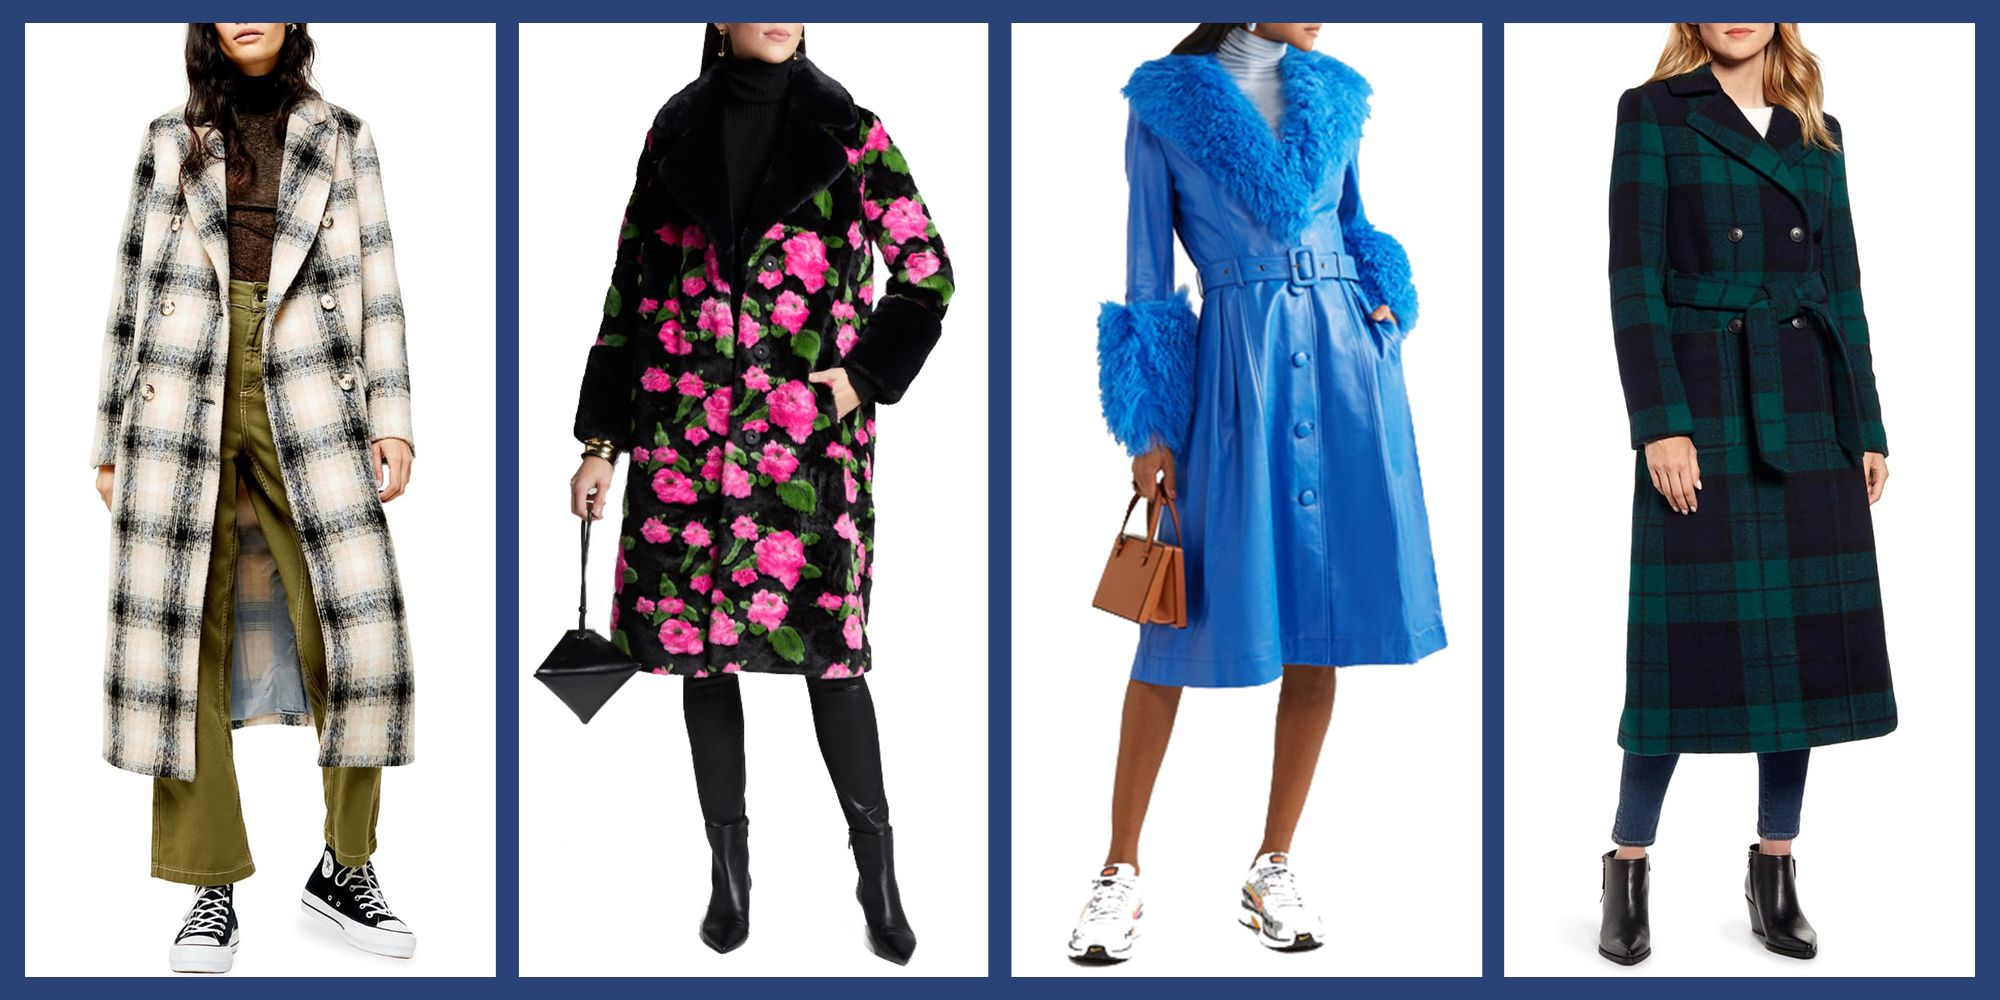 13 Women's Statement Coats to Wear This Fall and Winter